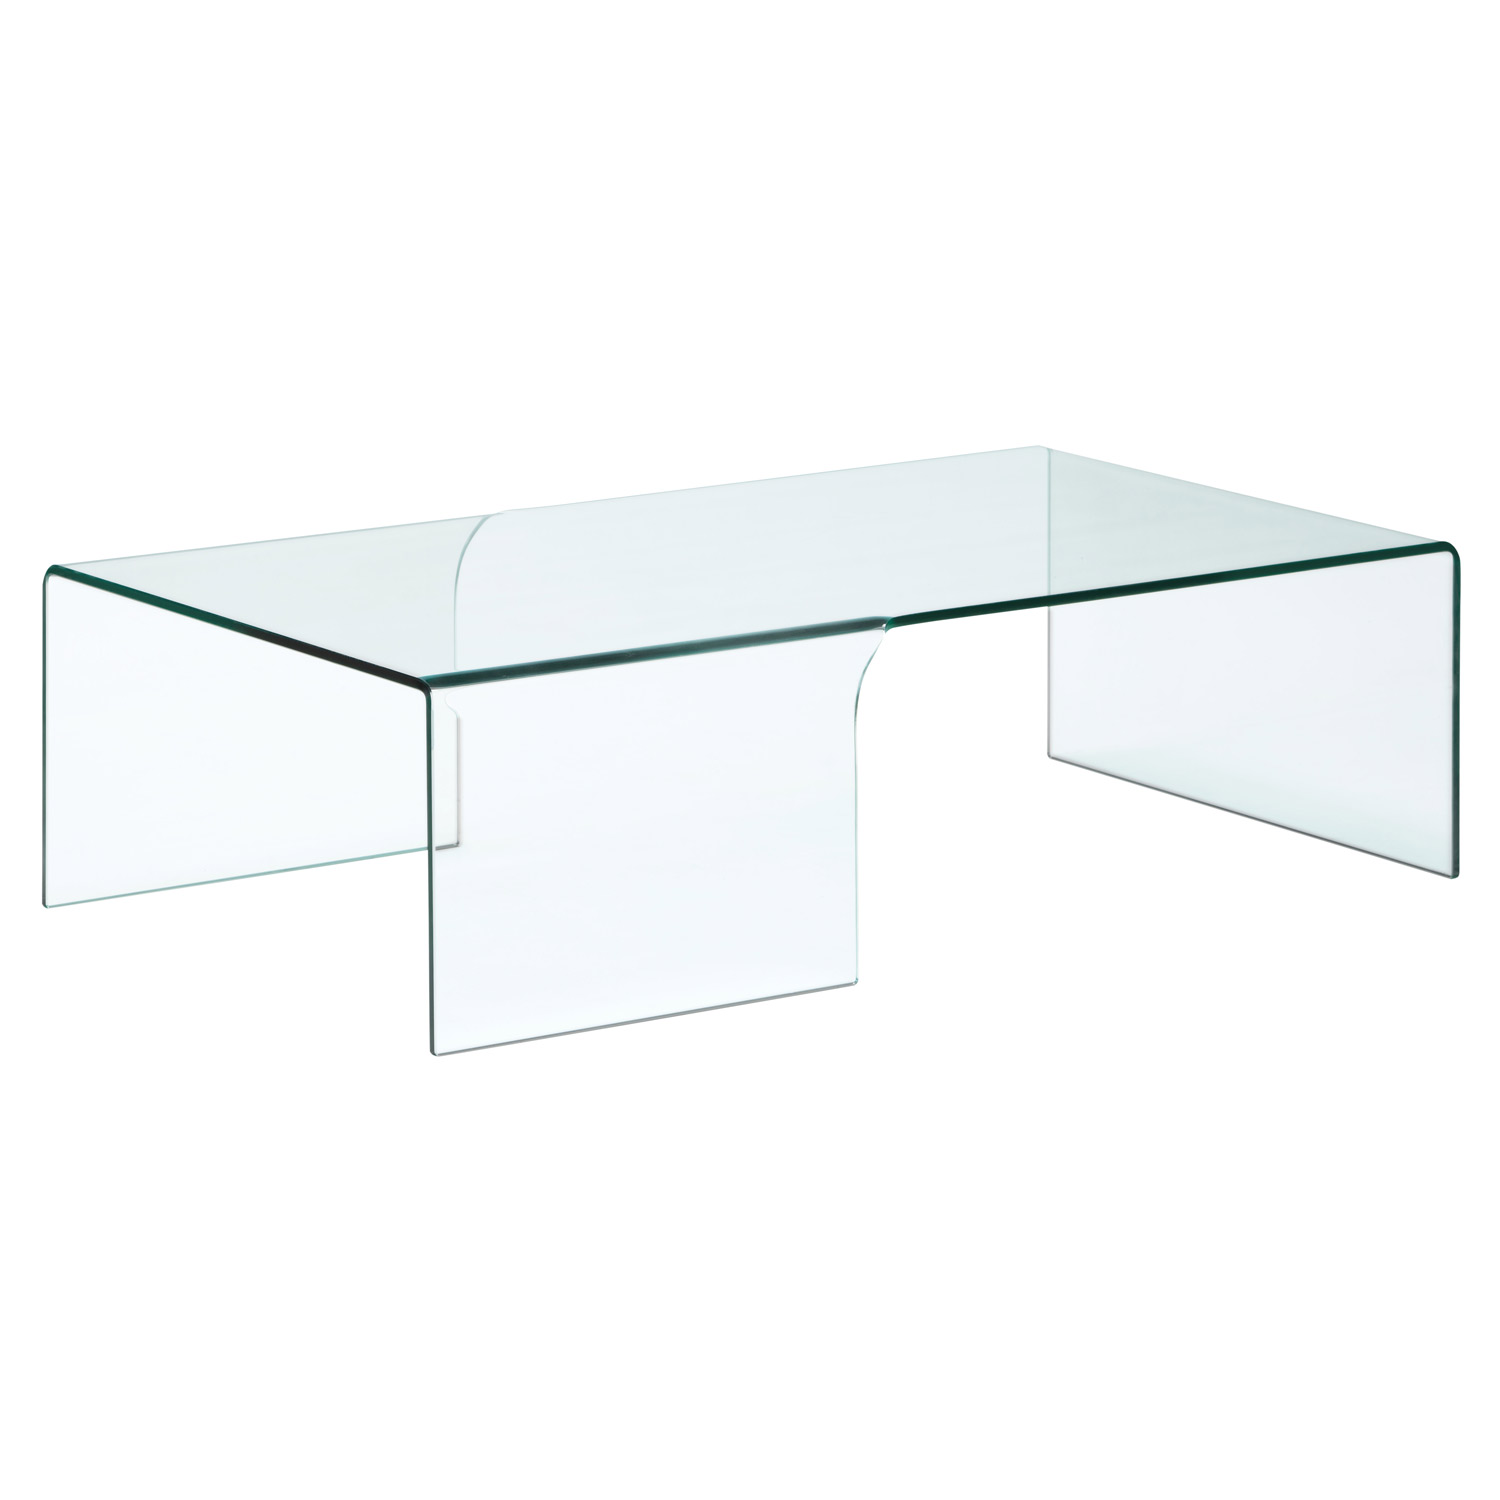 Solid Glass Coffee Table Also Glass Material Increases The Space Of All Rooms (View 3 of 9)